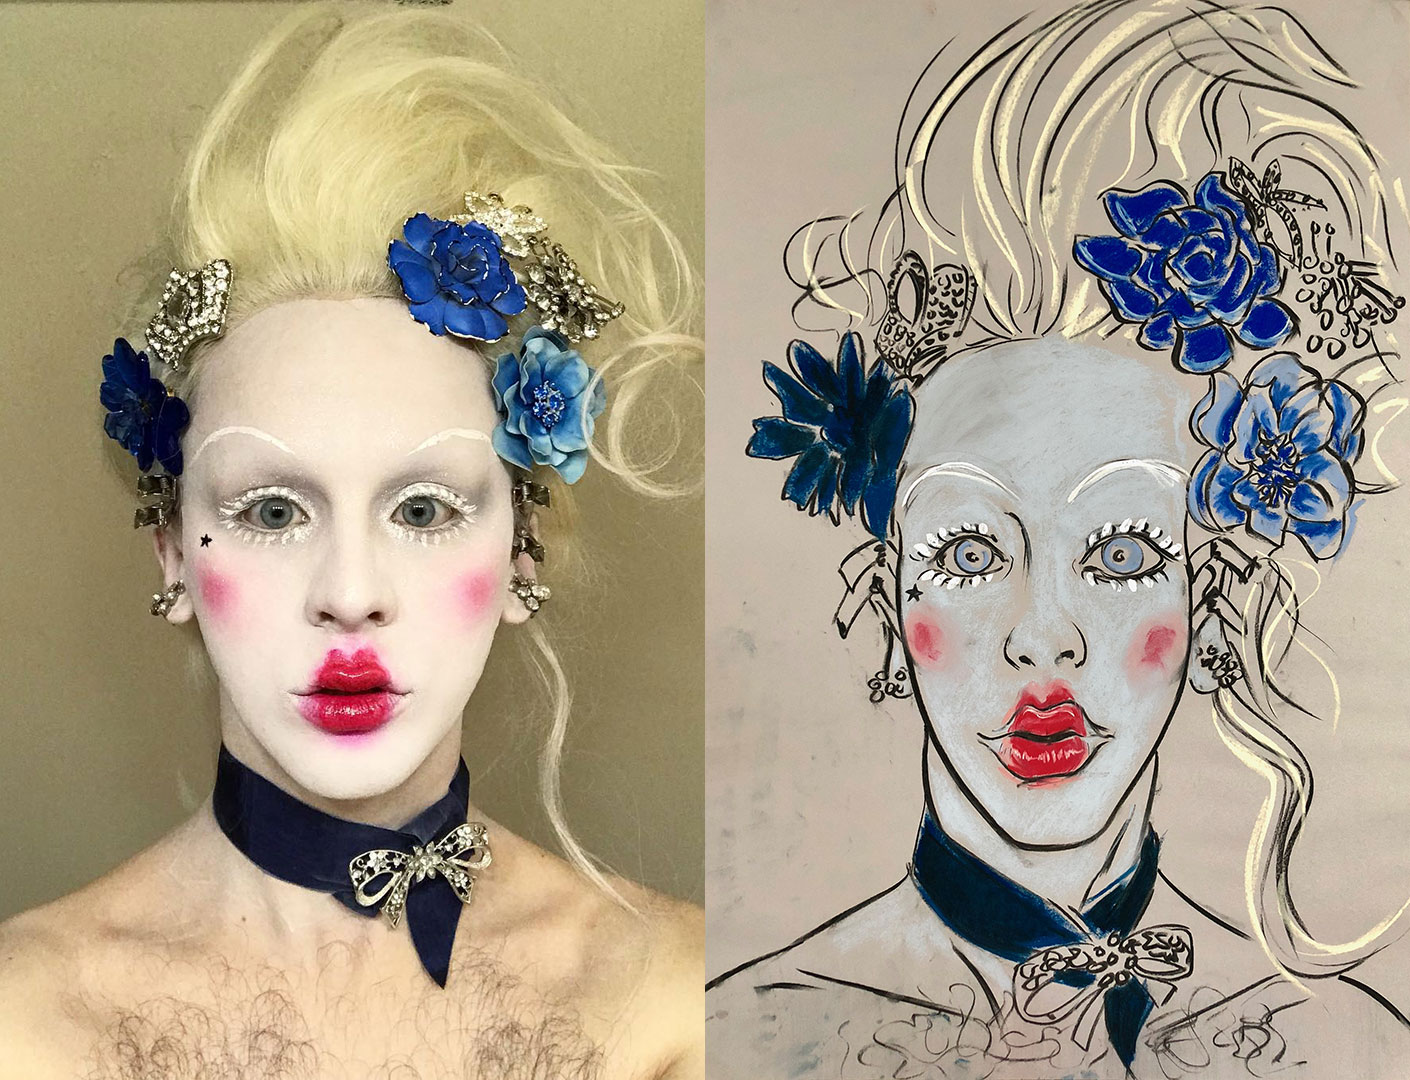 Meet the Ex-Adman Who's Turning Influencers Into Art